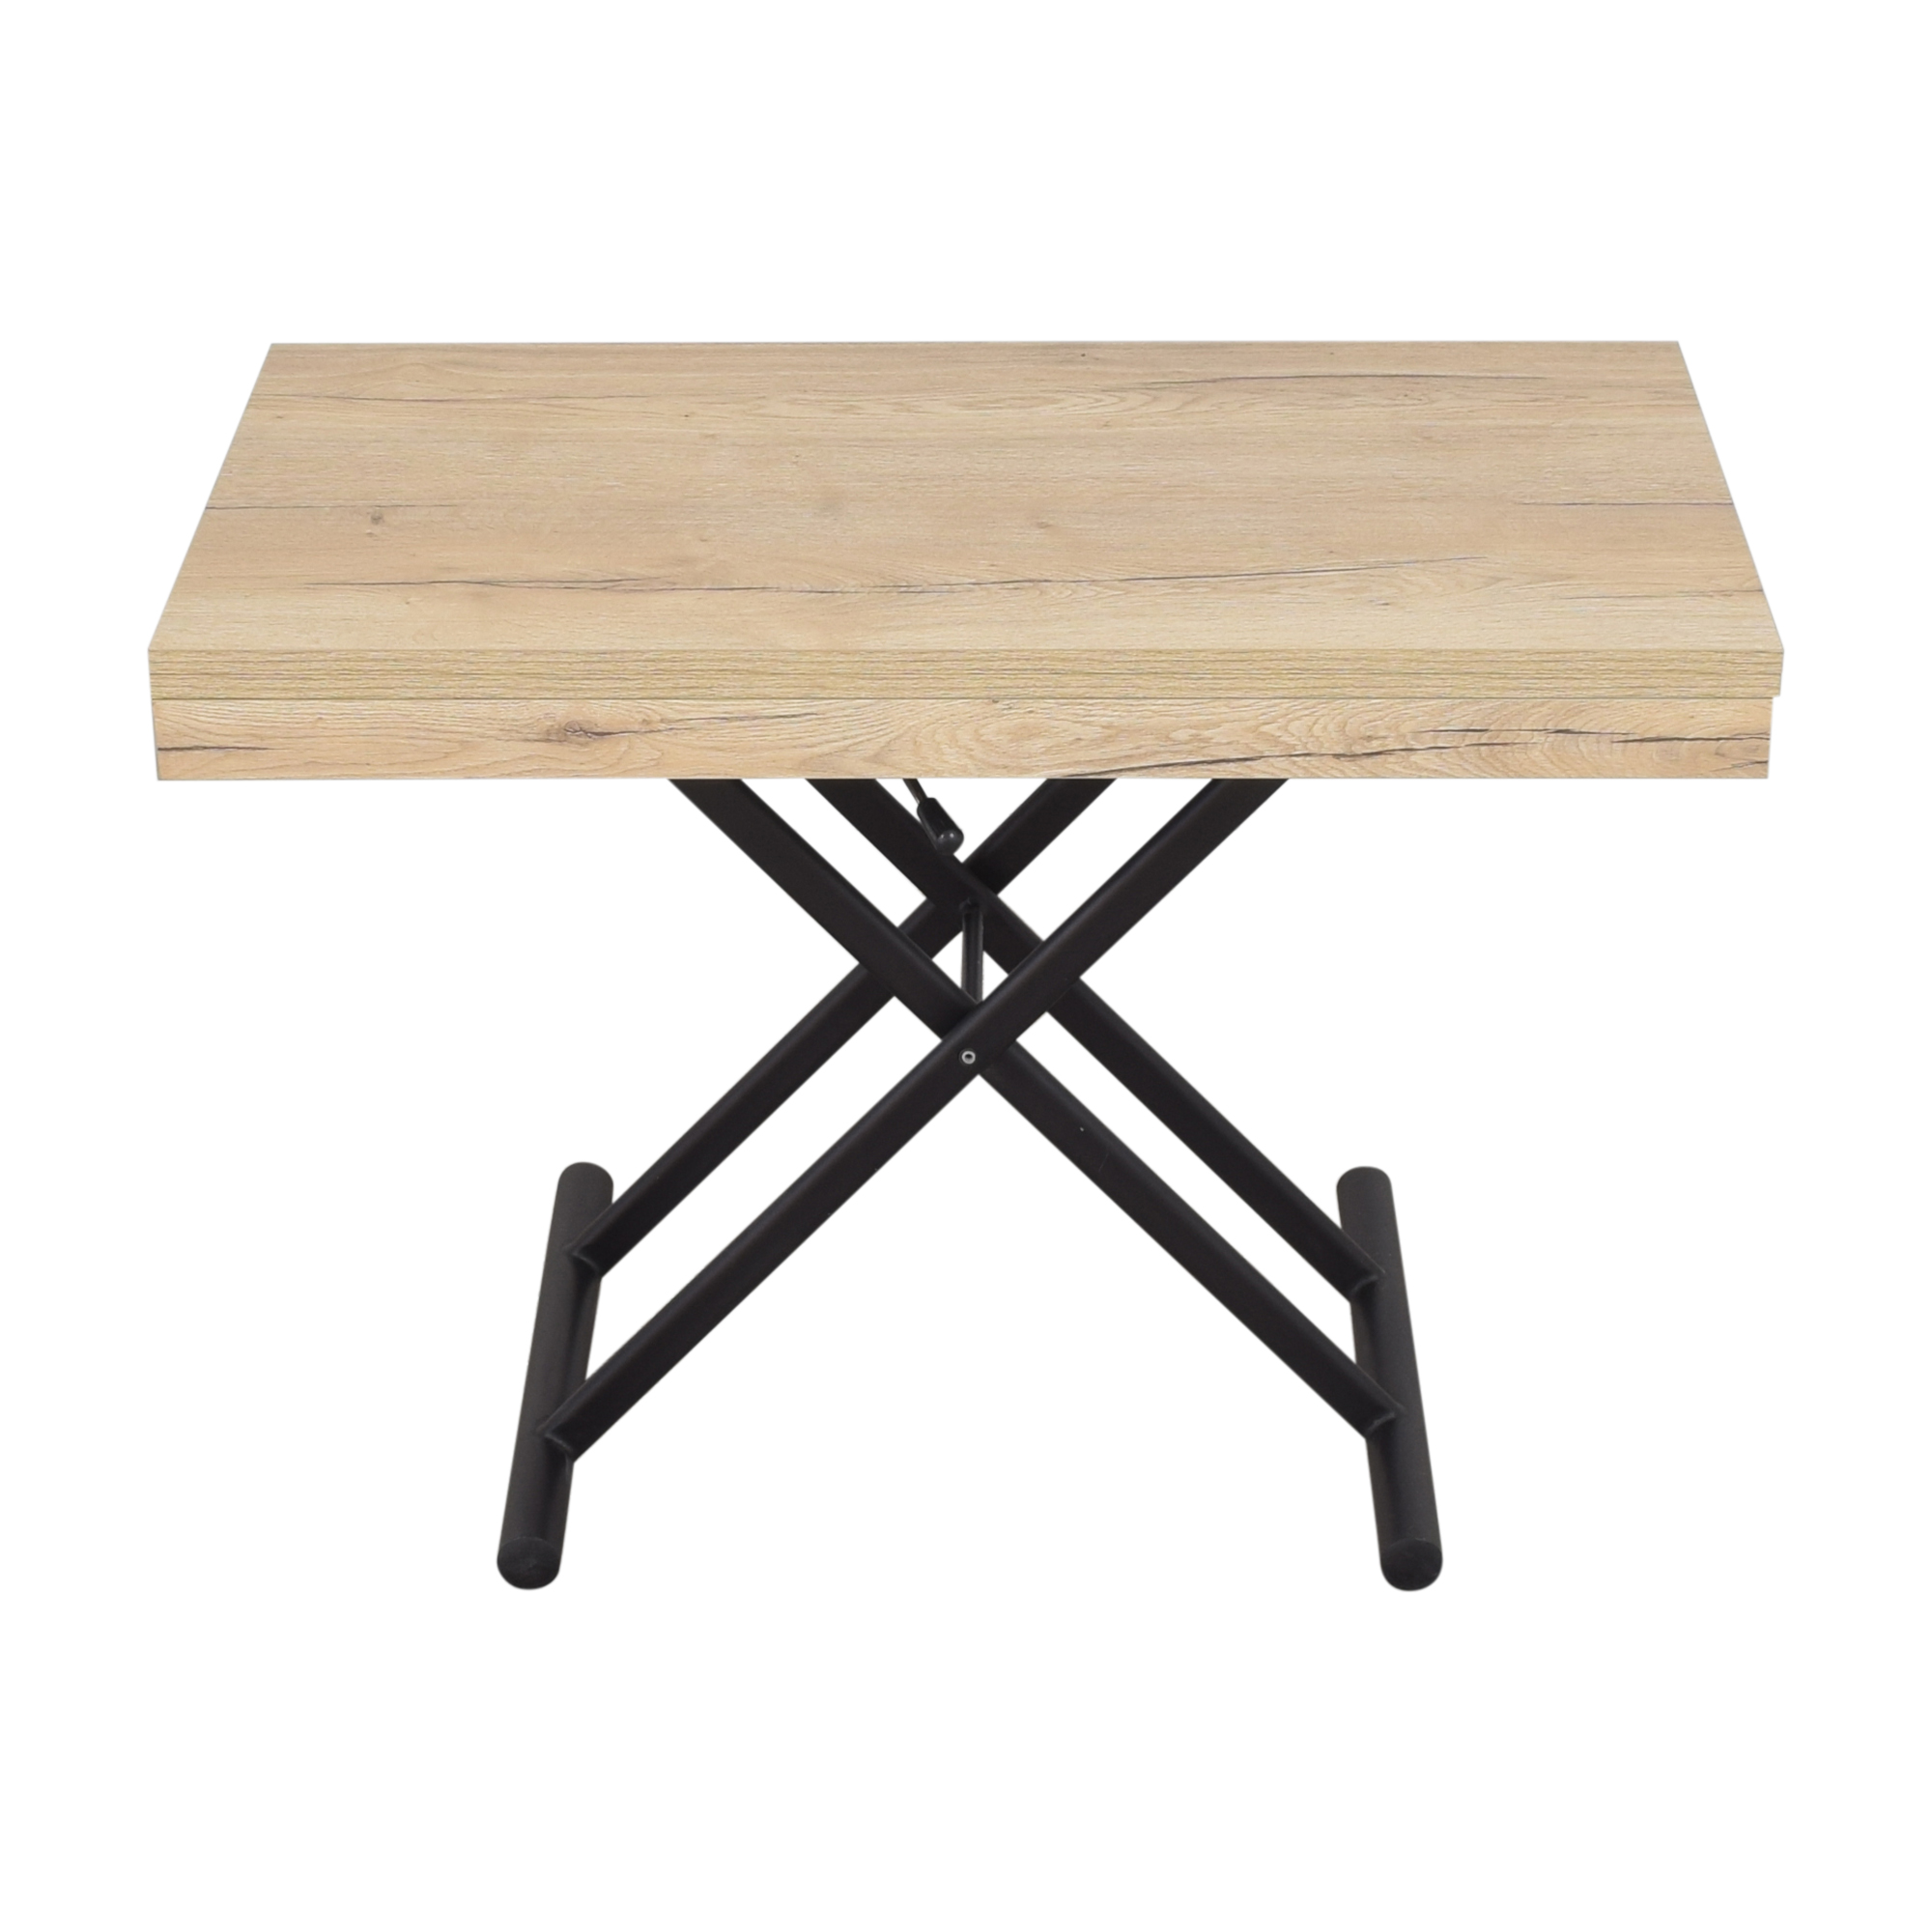 Expand Furniture Expand Furniture Alzare Square Transforming Table dimensions